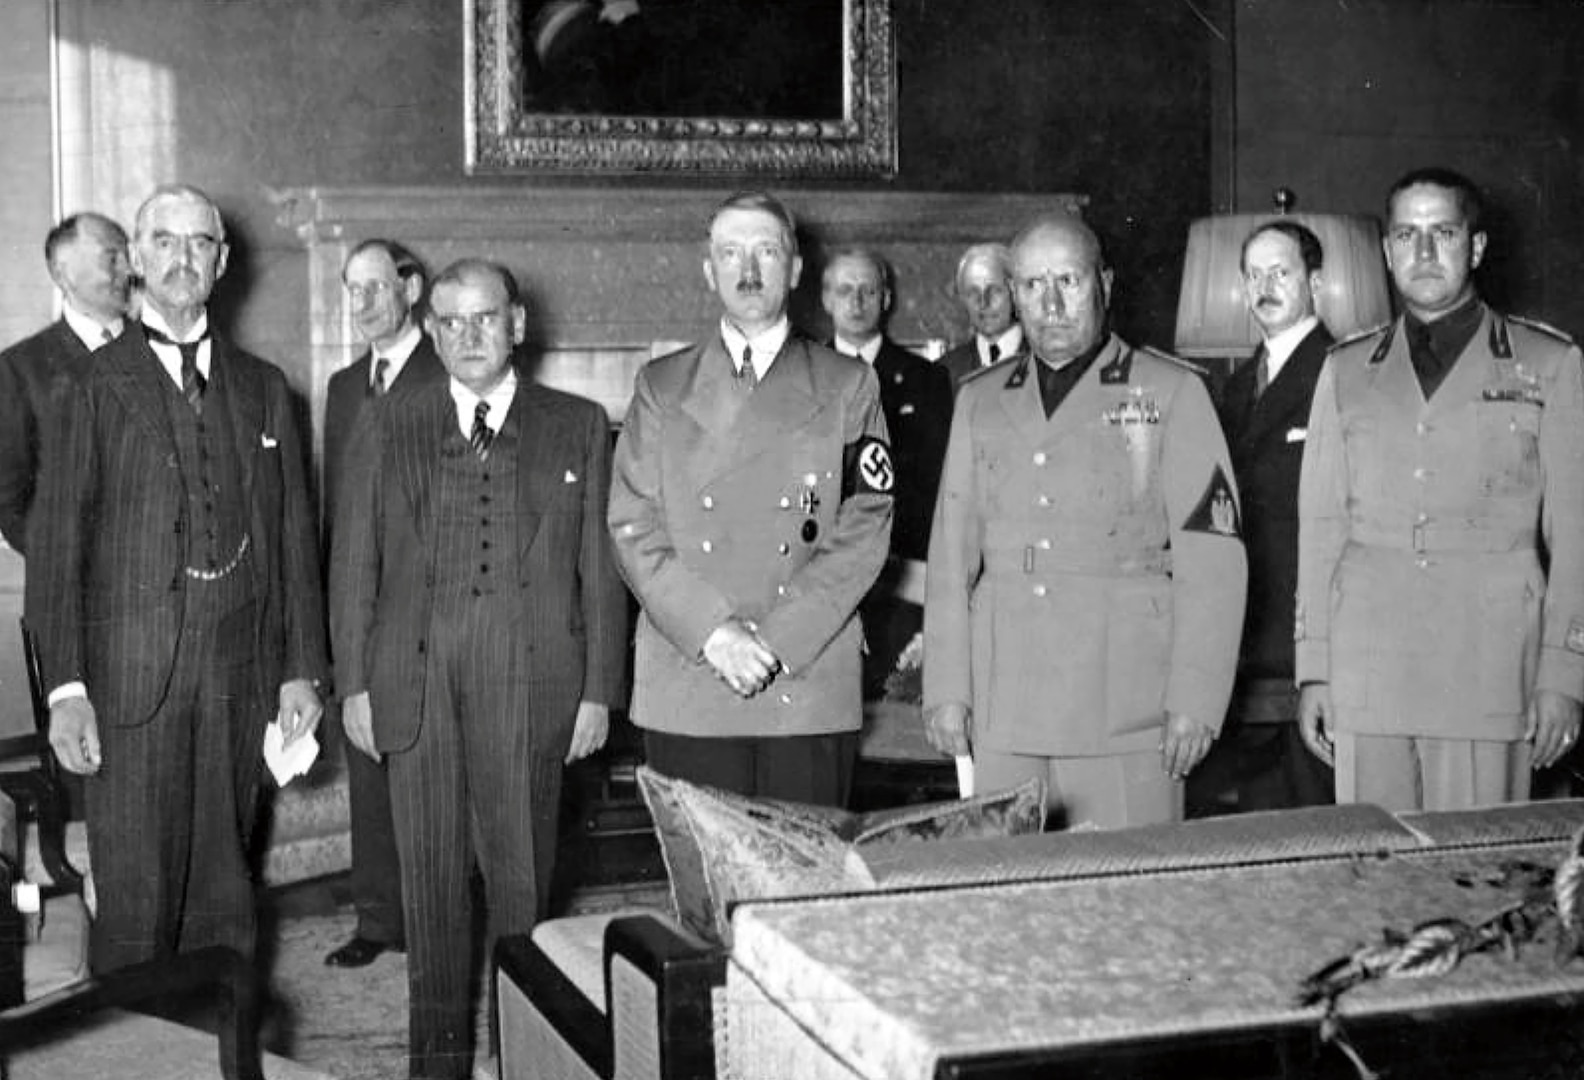 Front row, left to right, British Prime Minister (PM) Neville Chamberlain, French PM Édouard Daladier, German Chancellor Adolf Hitler, Italian PM Benito Mussolini, and Italian Foreign Minister Count Ciano as they prepare to sign Munich Agreement, September 29, 1938 (Courtesy German Federal Archive)